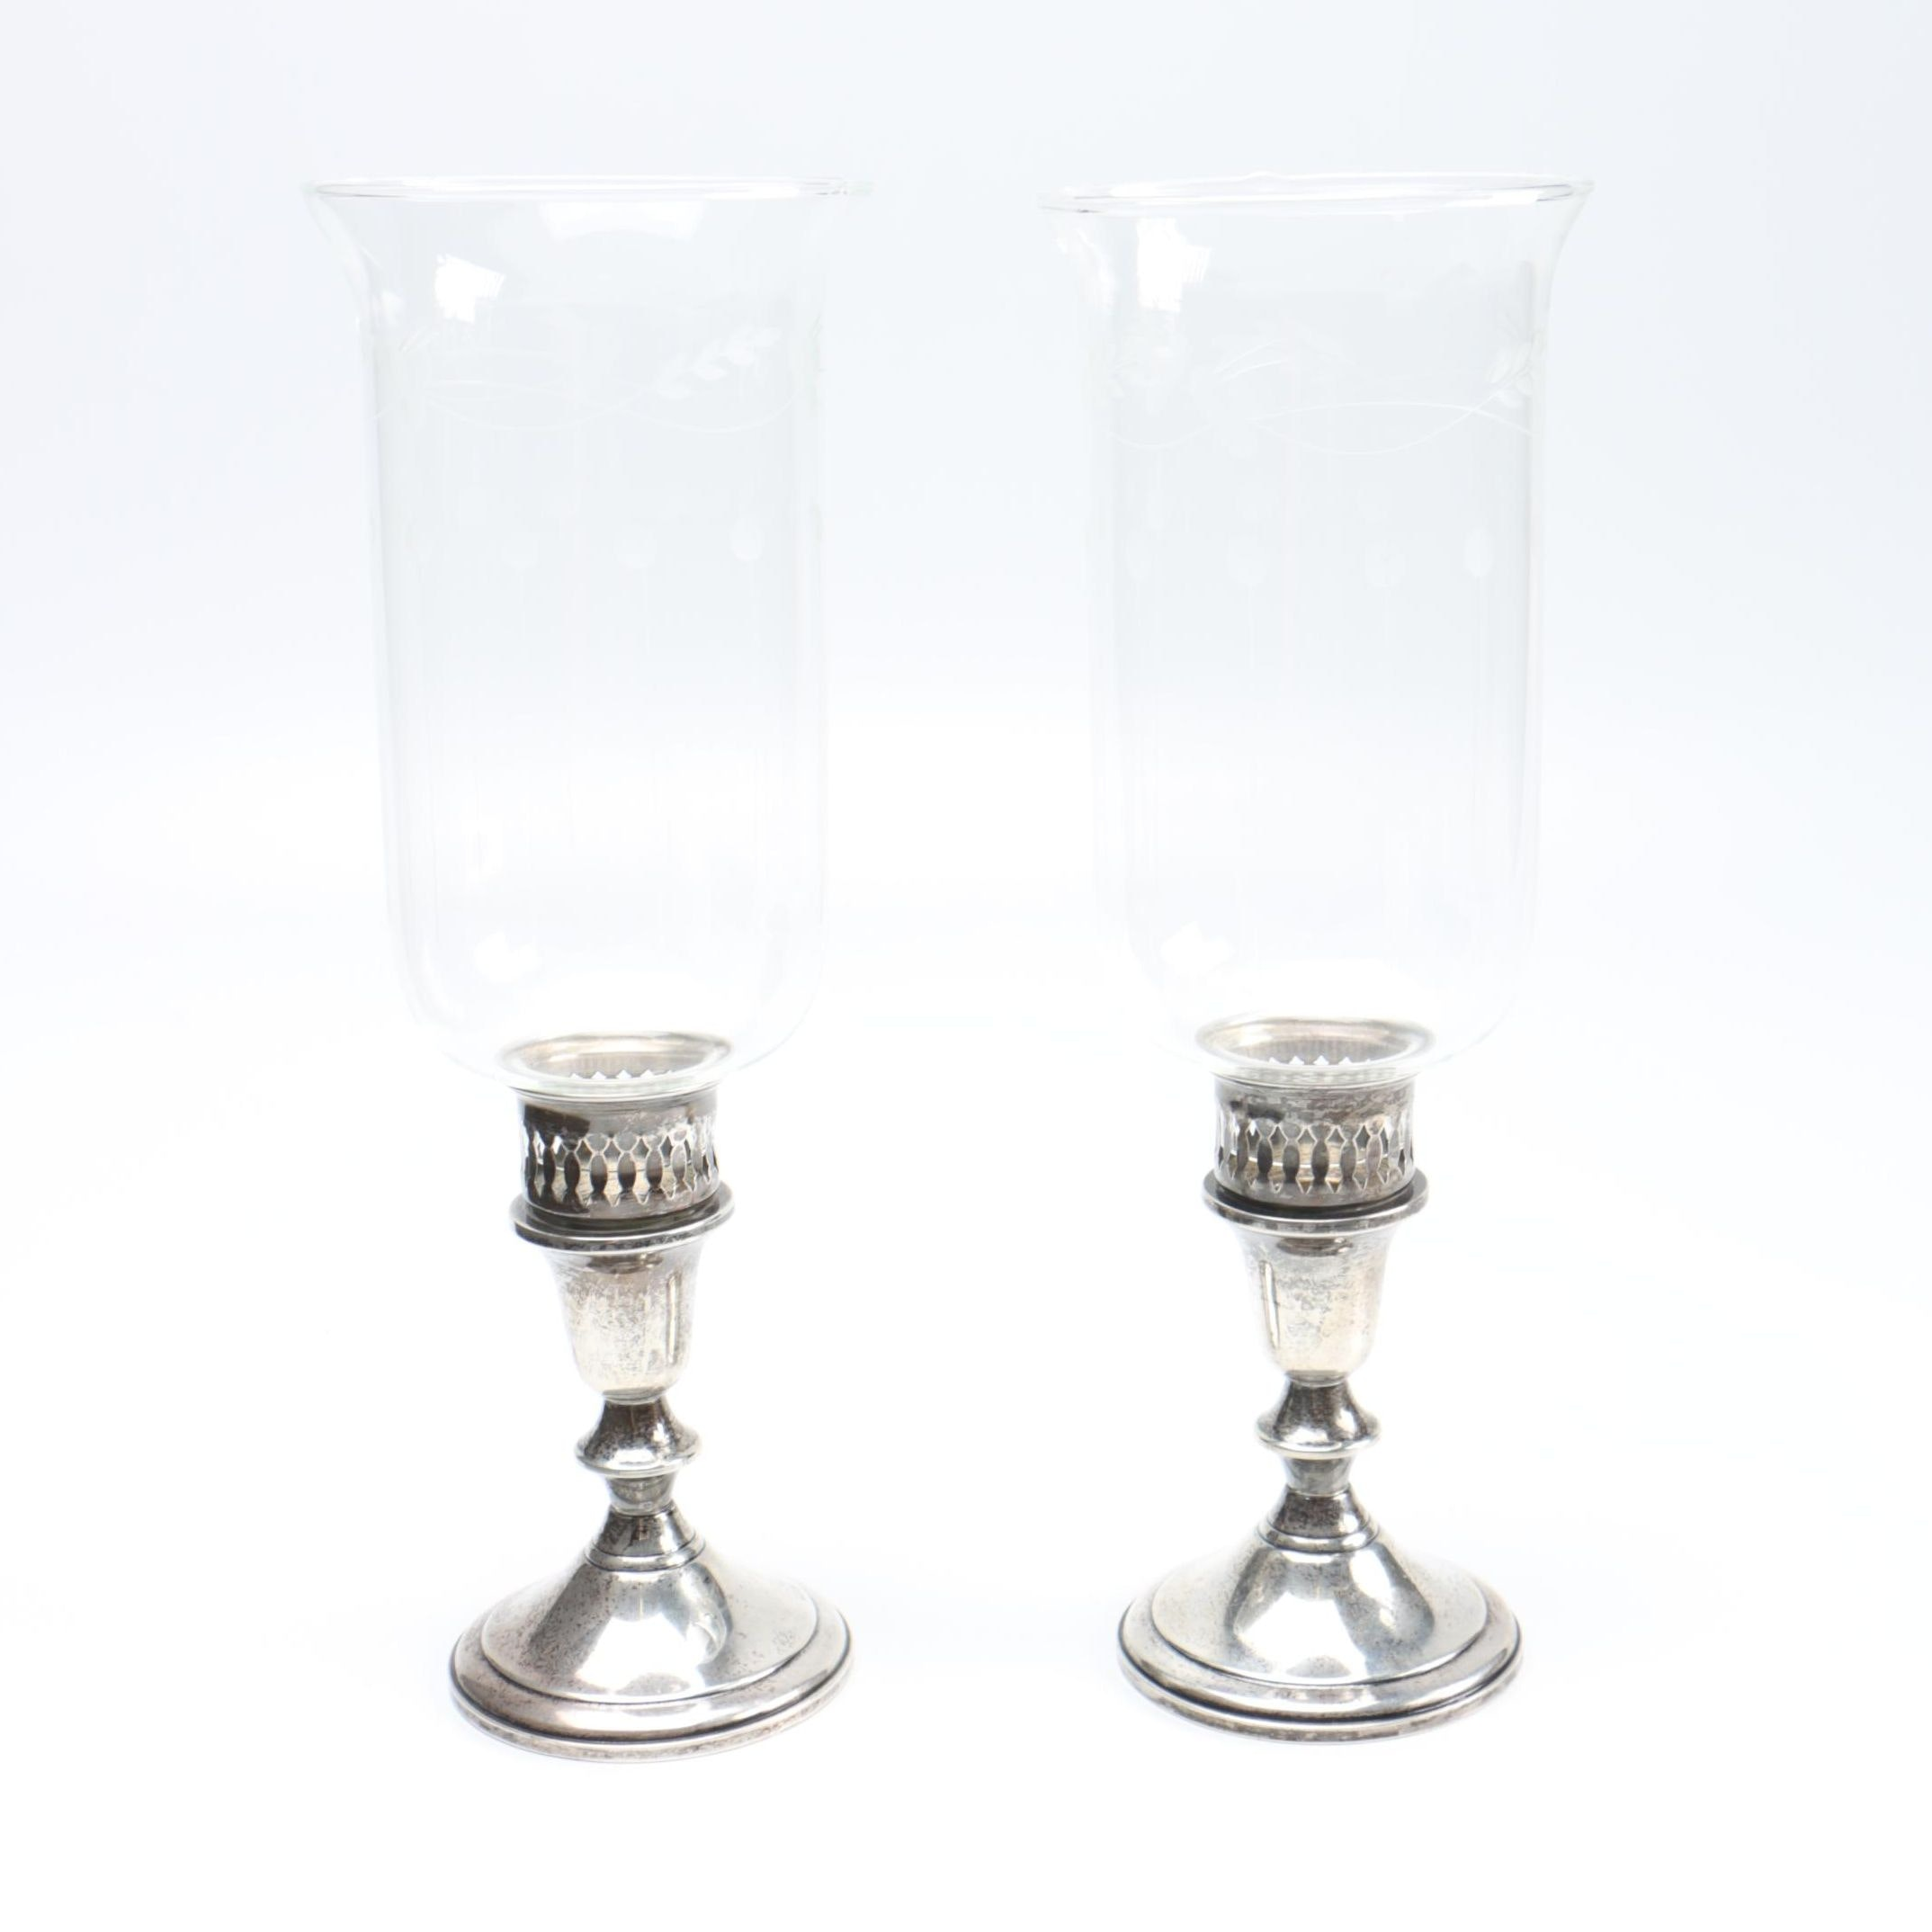 Towle Silversmiths Sterling Hurricane Candlesticks